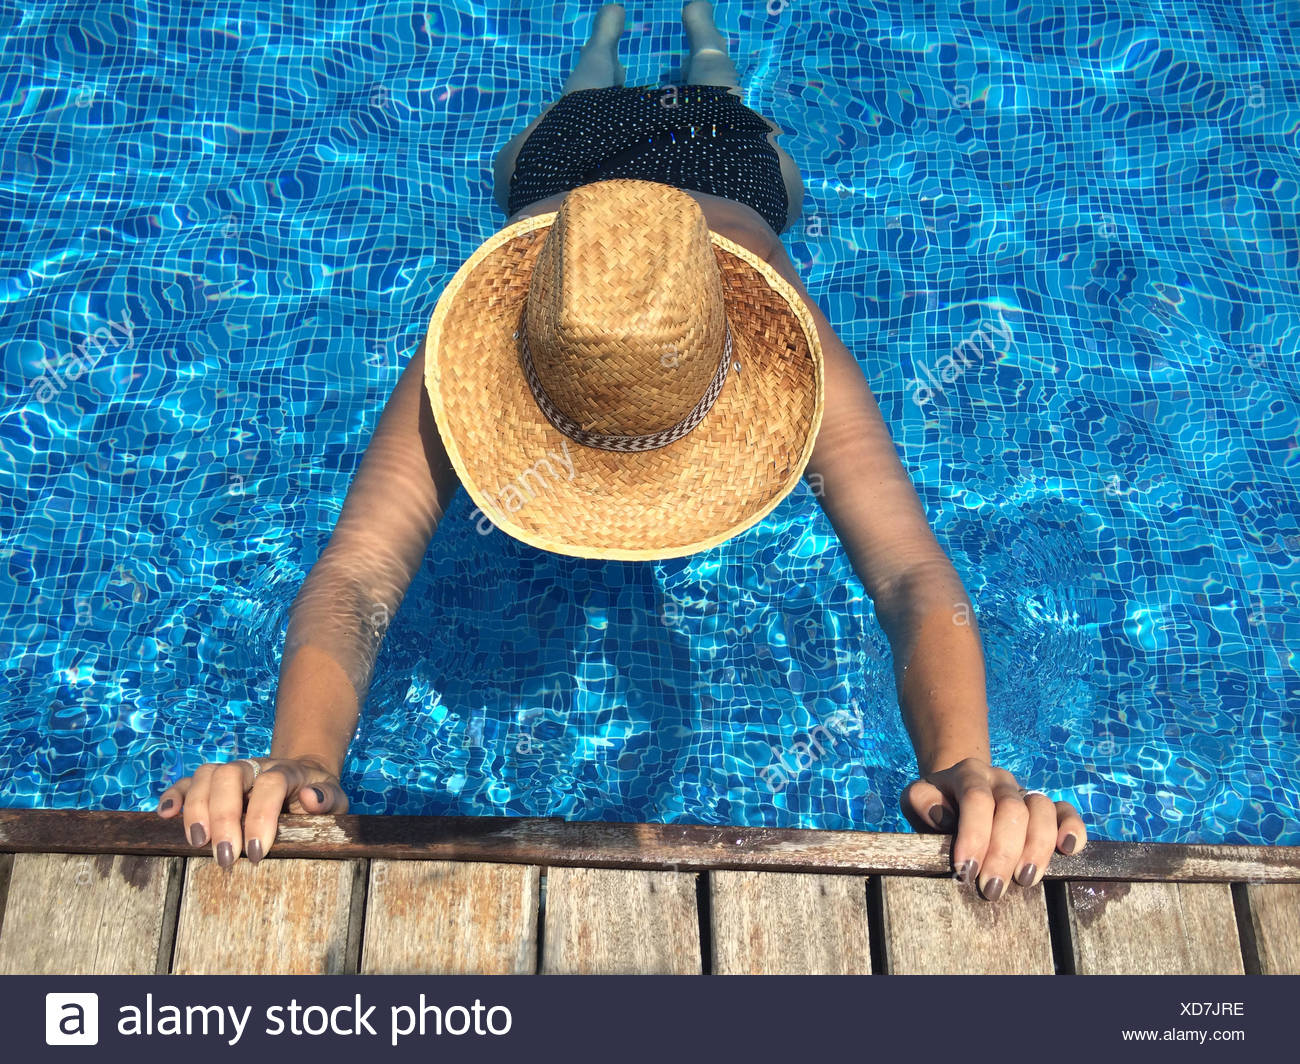 Woman stretching in swimming pool - Stock Image